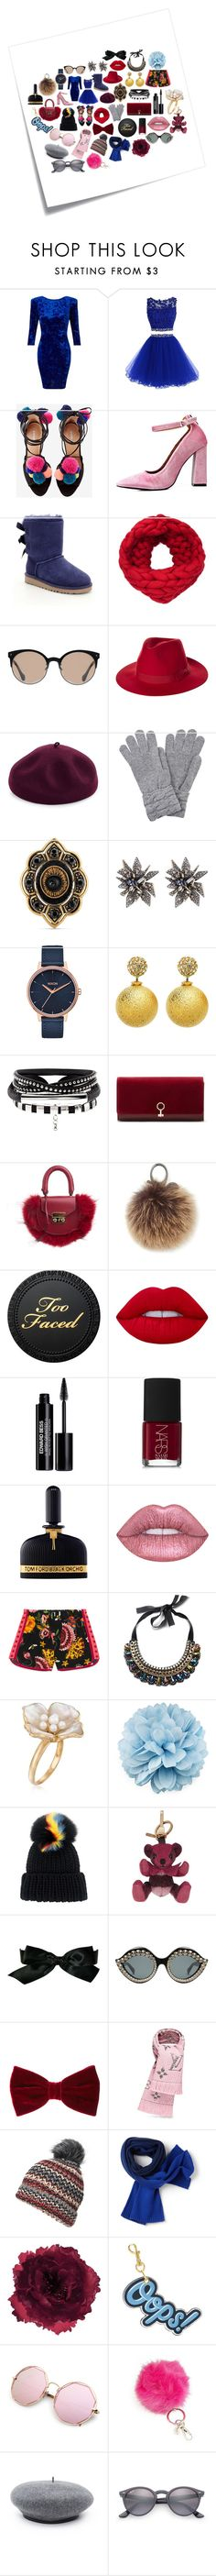 Some of My Favorite Things by crystalglowdesign on Polyvore featuring Miss Selfridge, Gucci, Odette, UGG, SALAR, Louise et Cie, Rebecca Minkoff, Alexis Bittar, Ross-Simons and Nixon